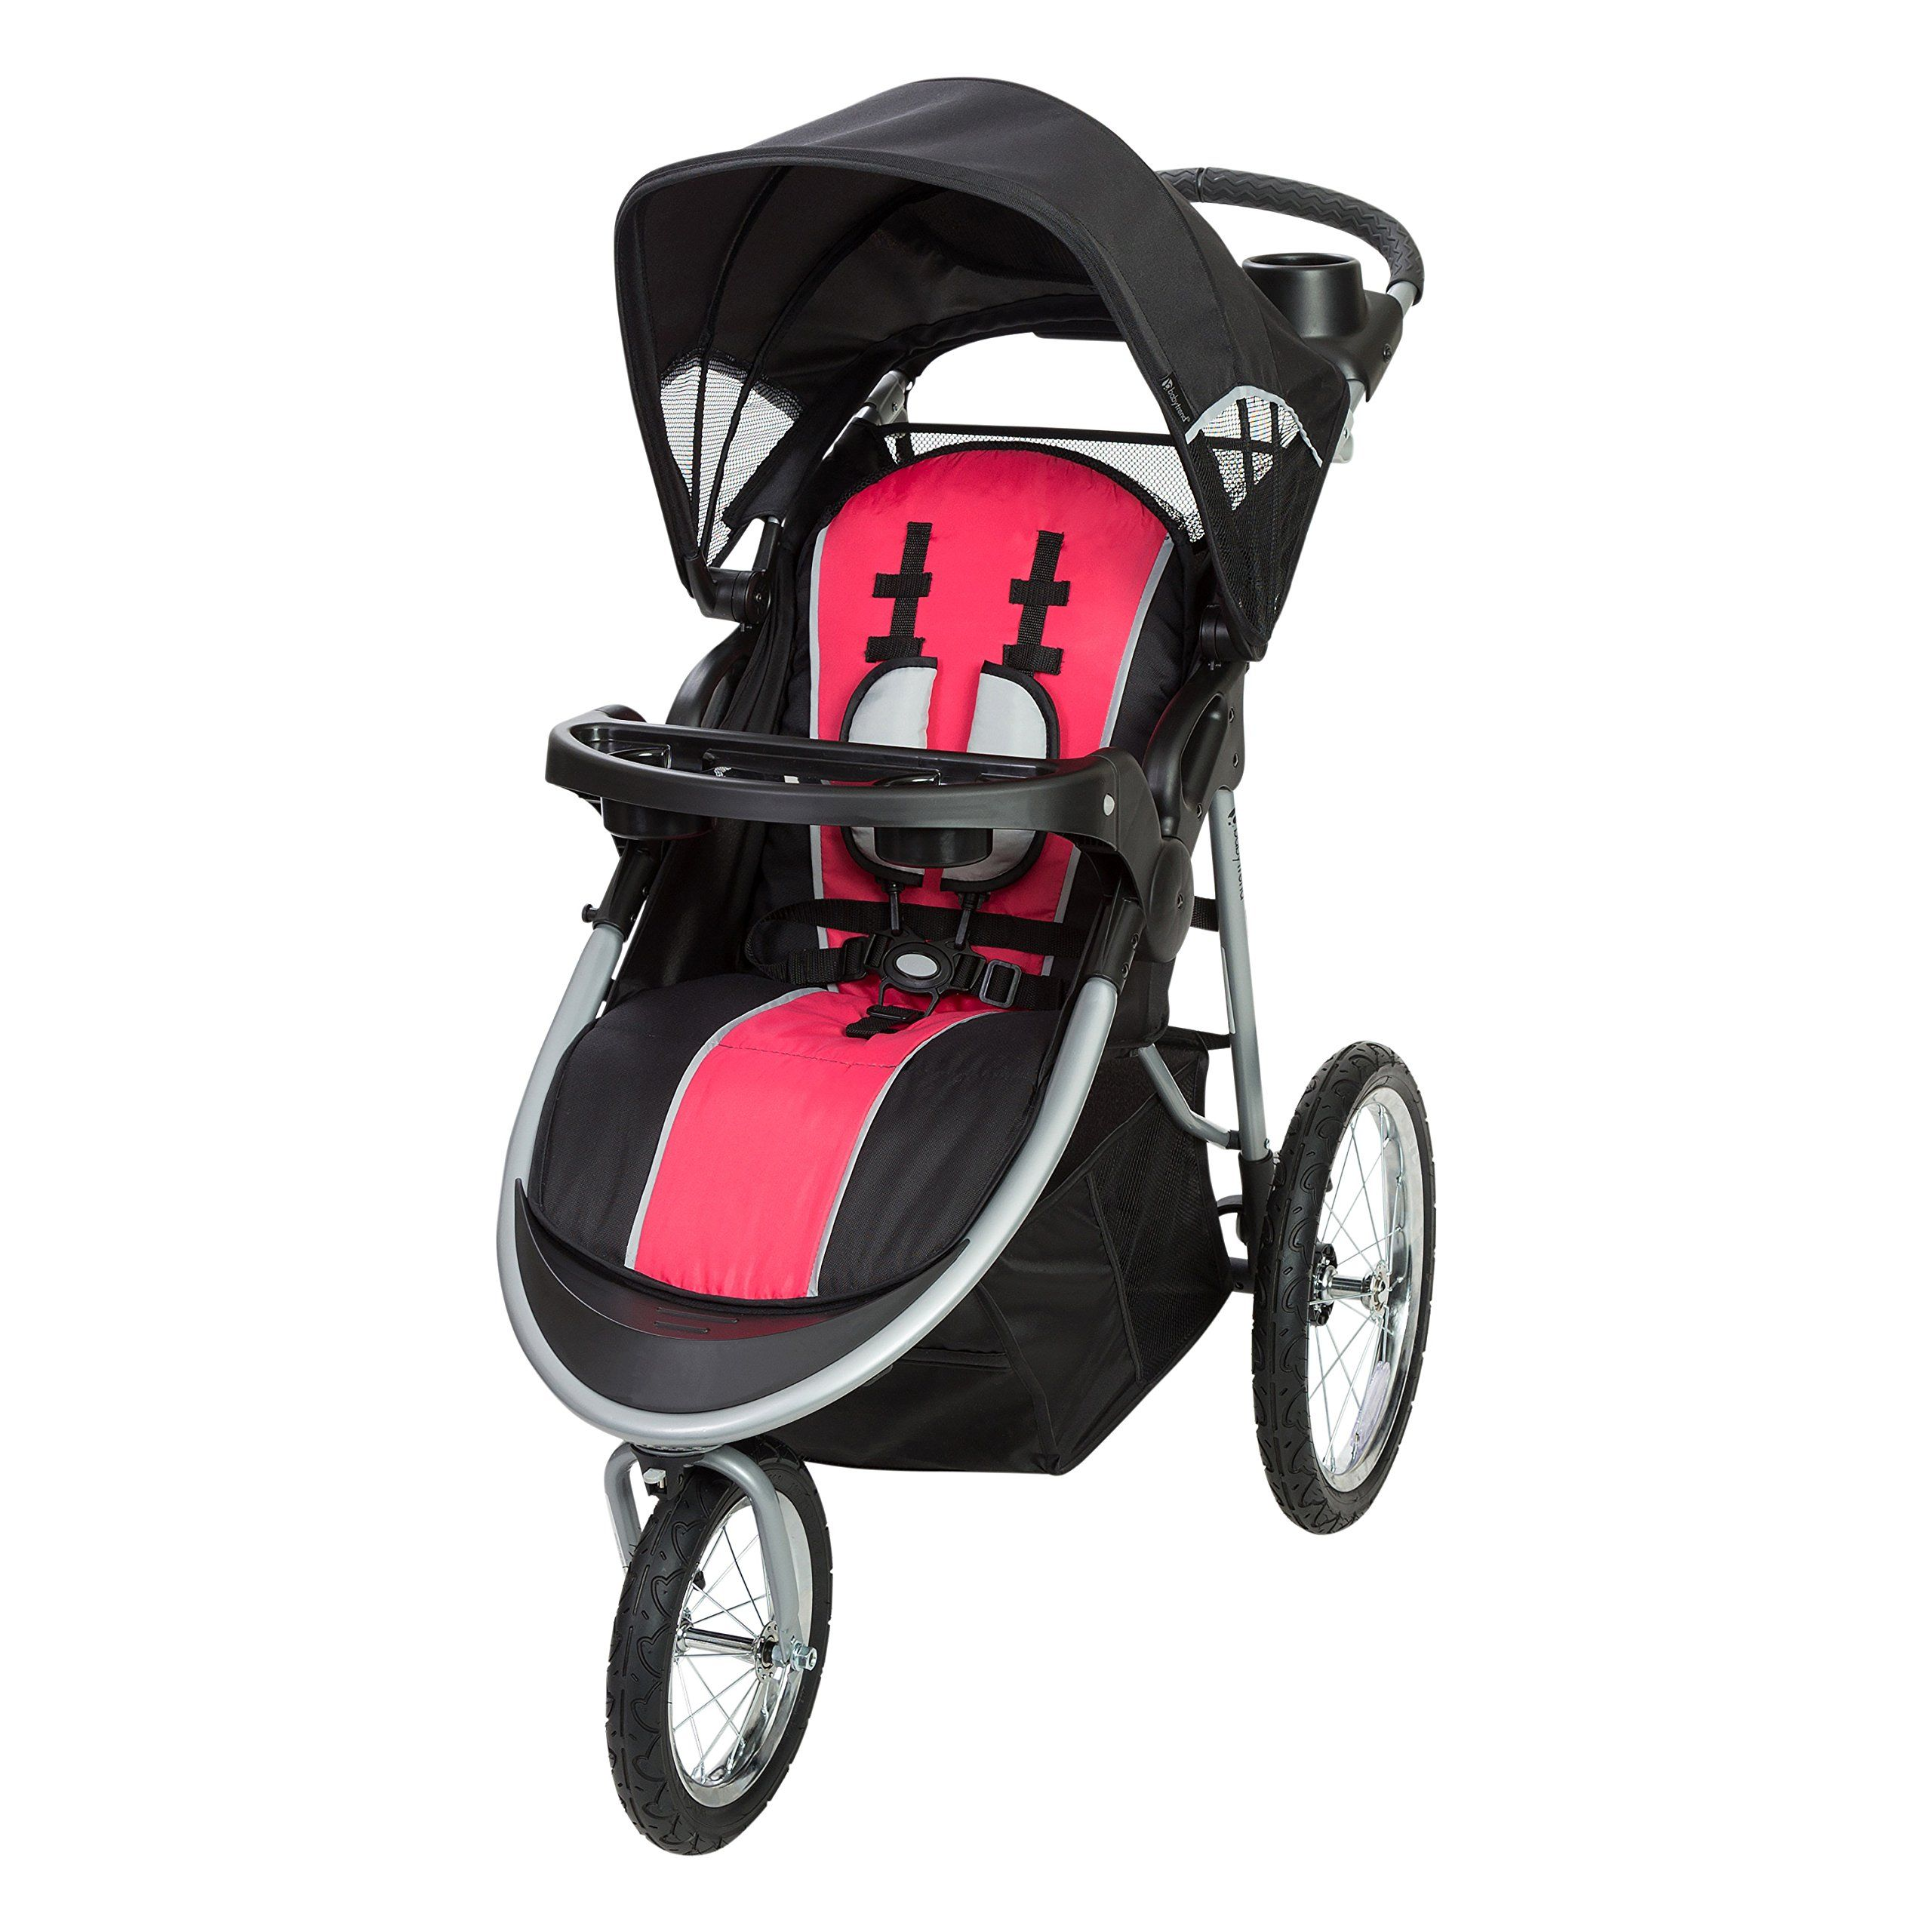 The Graco Ready2grow Click Connect LX Stroller is the best